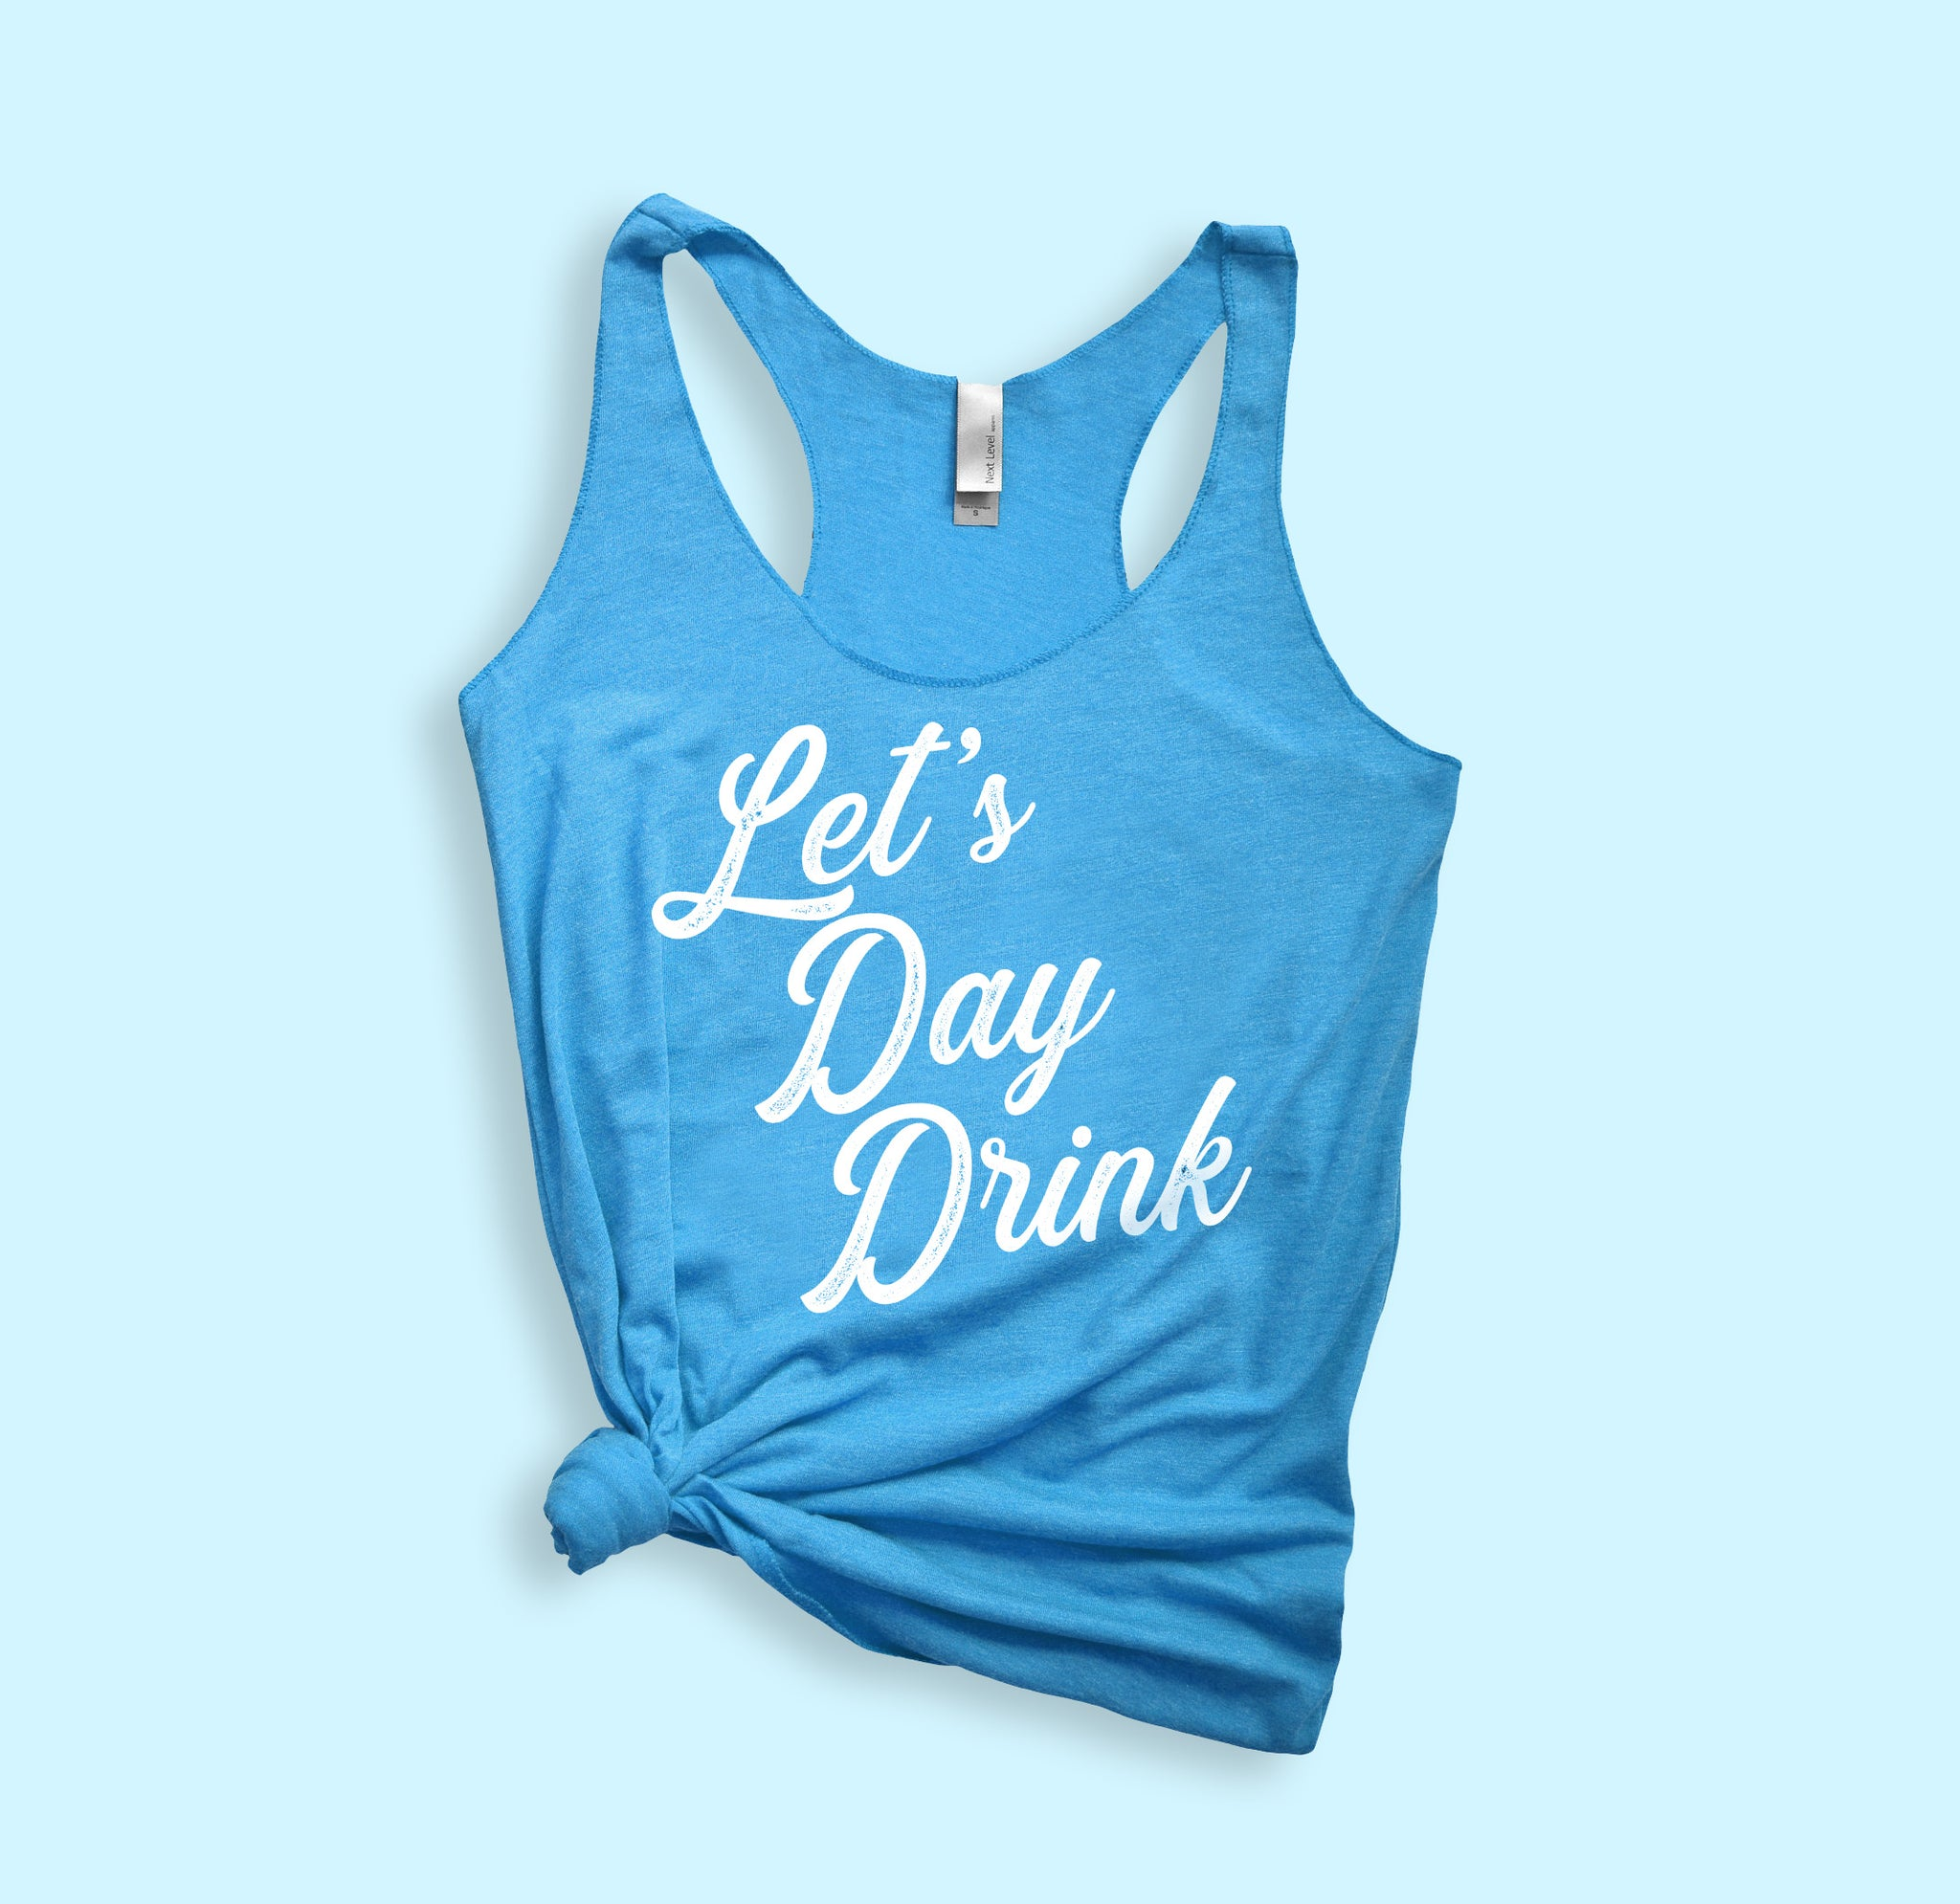 Let's Day Drink Tank